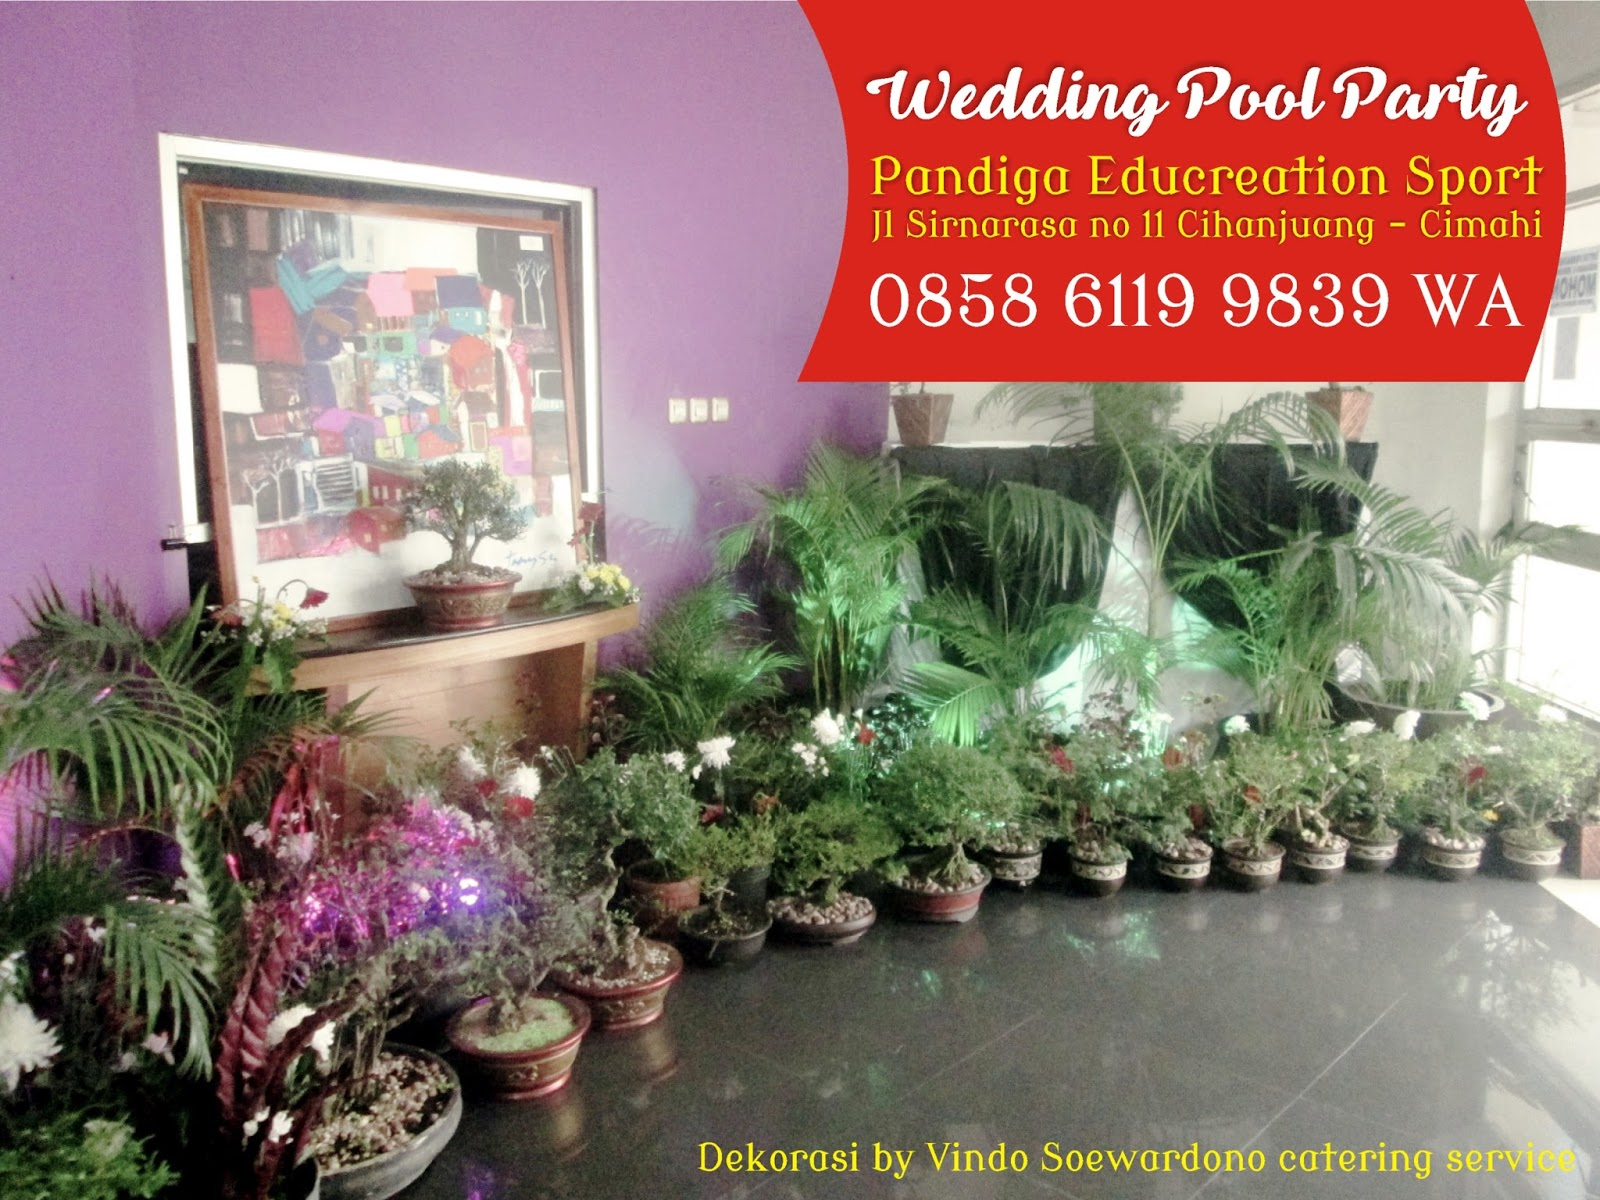 Wedding venue pandiga cimahi for Dekorasi pool party